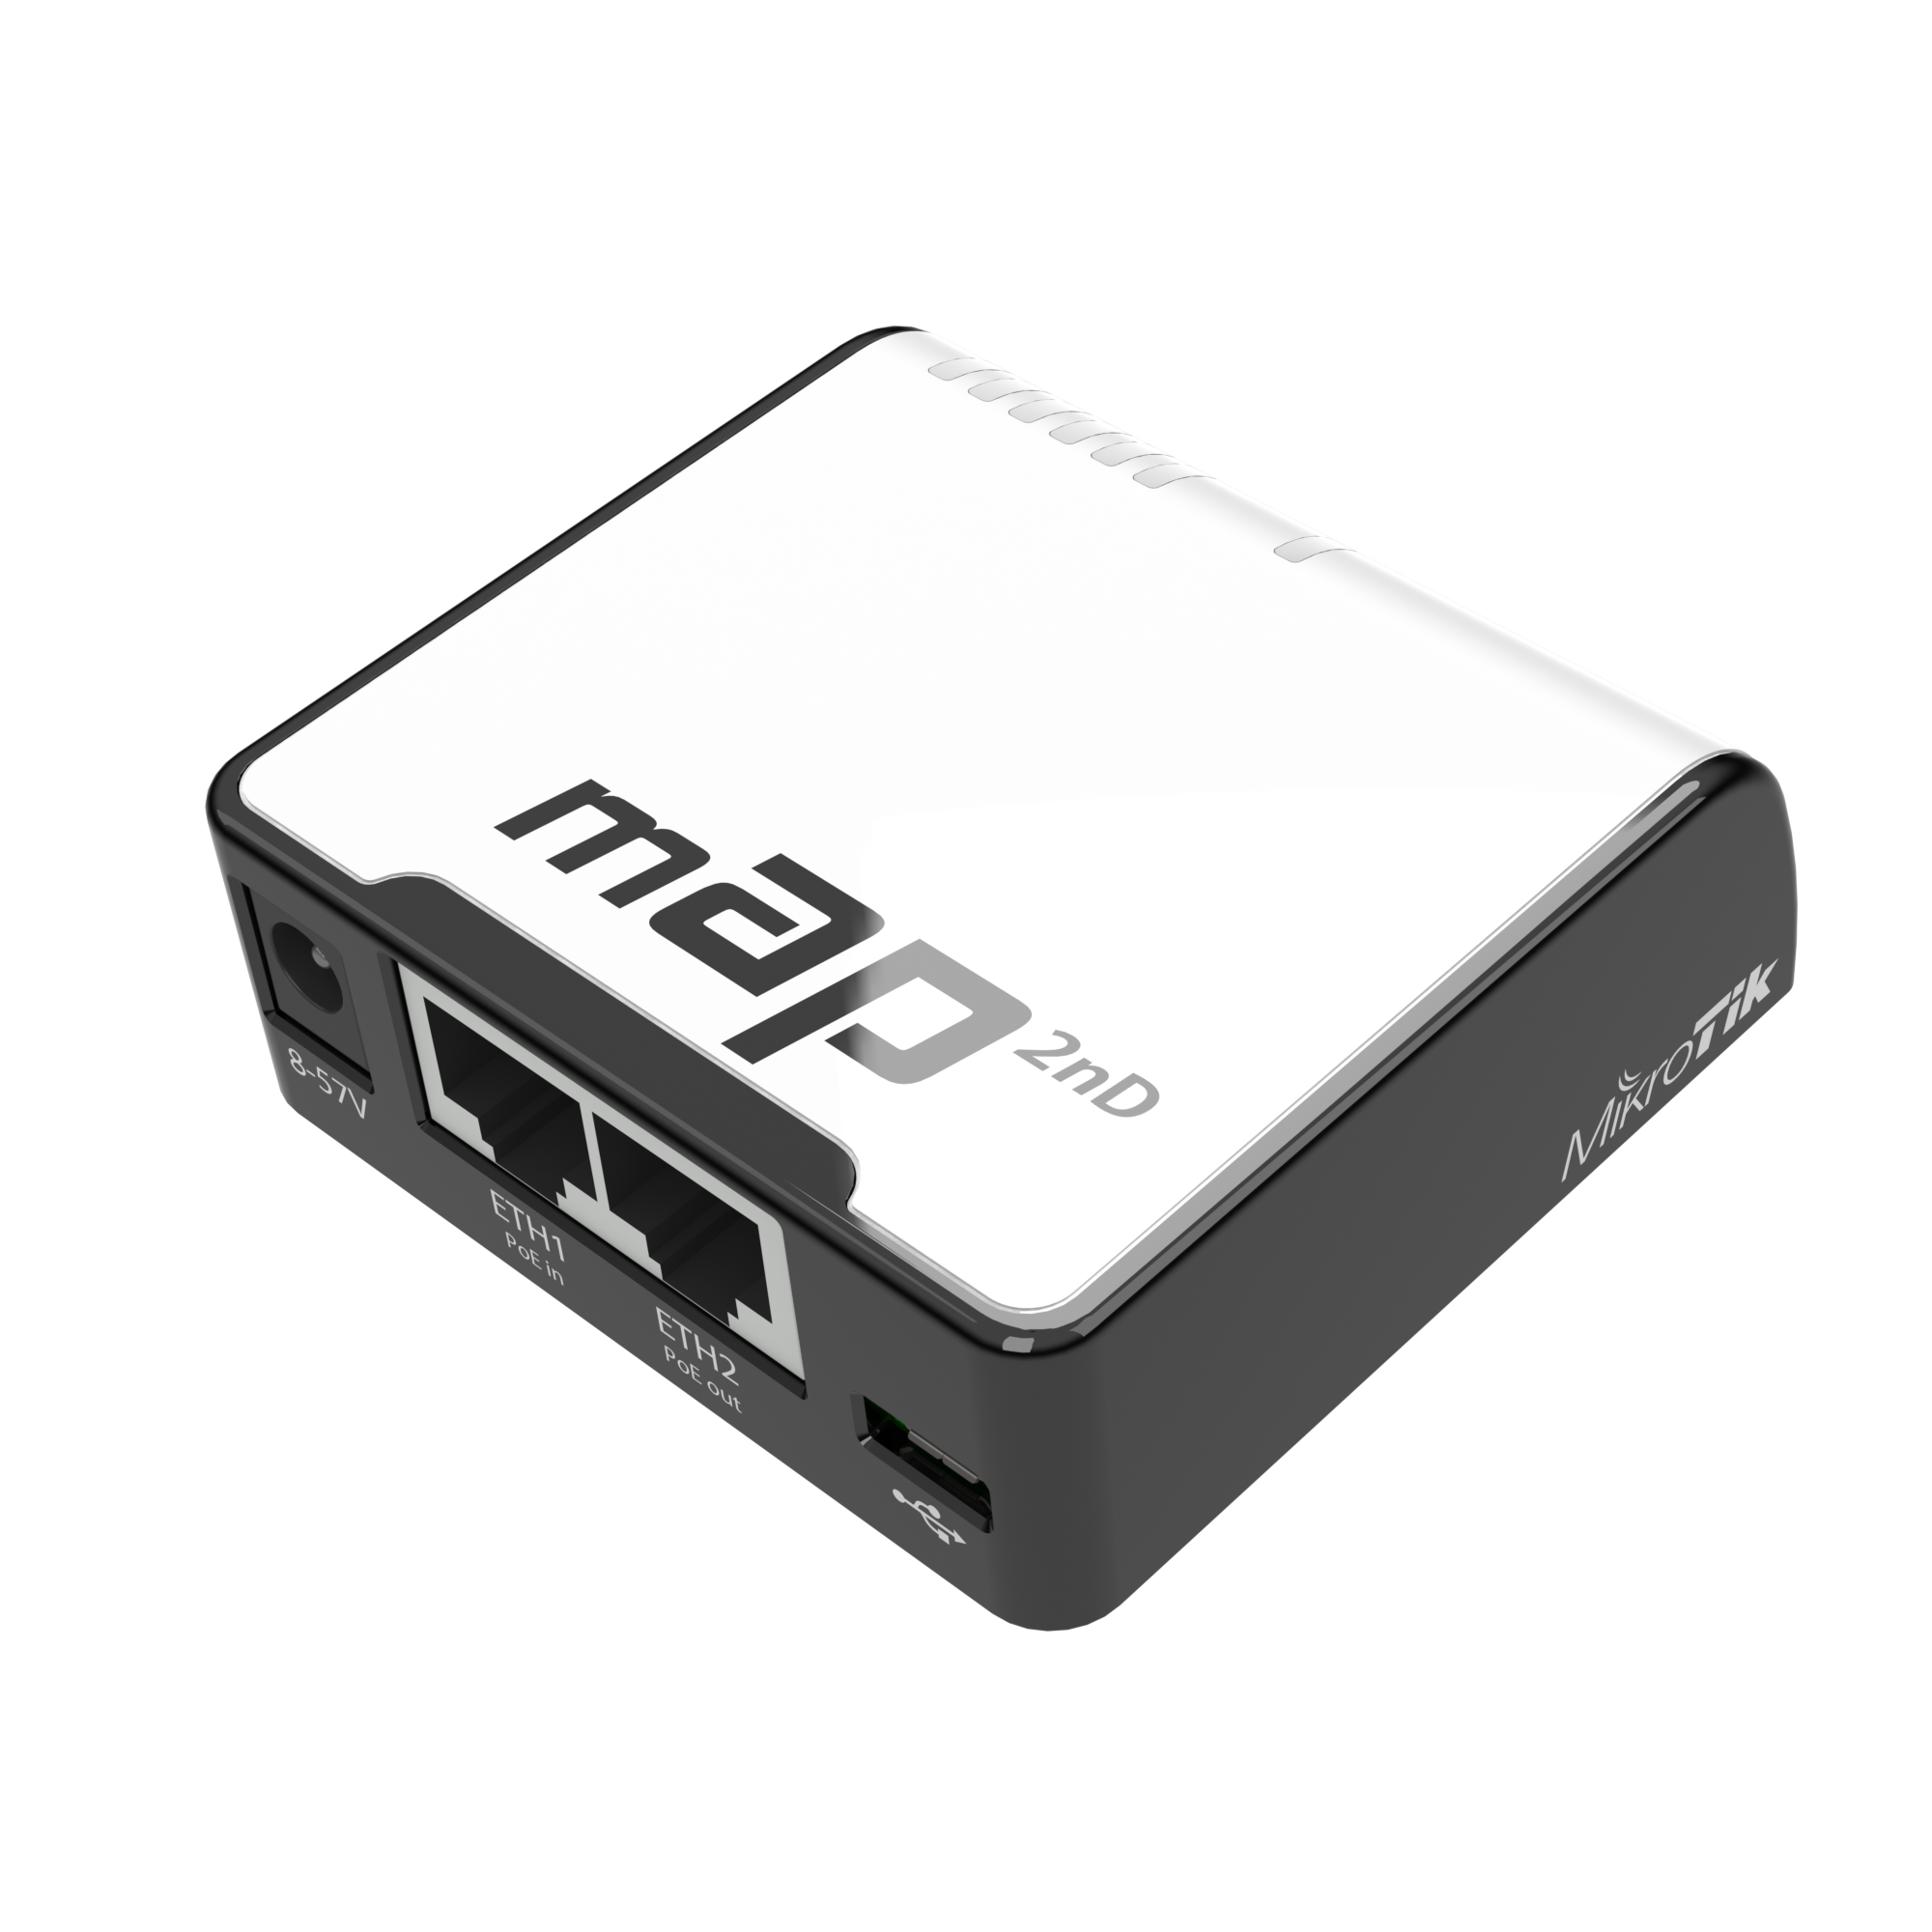 MikroTik Routers and Wireless - Products: mAP